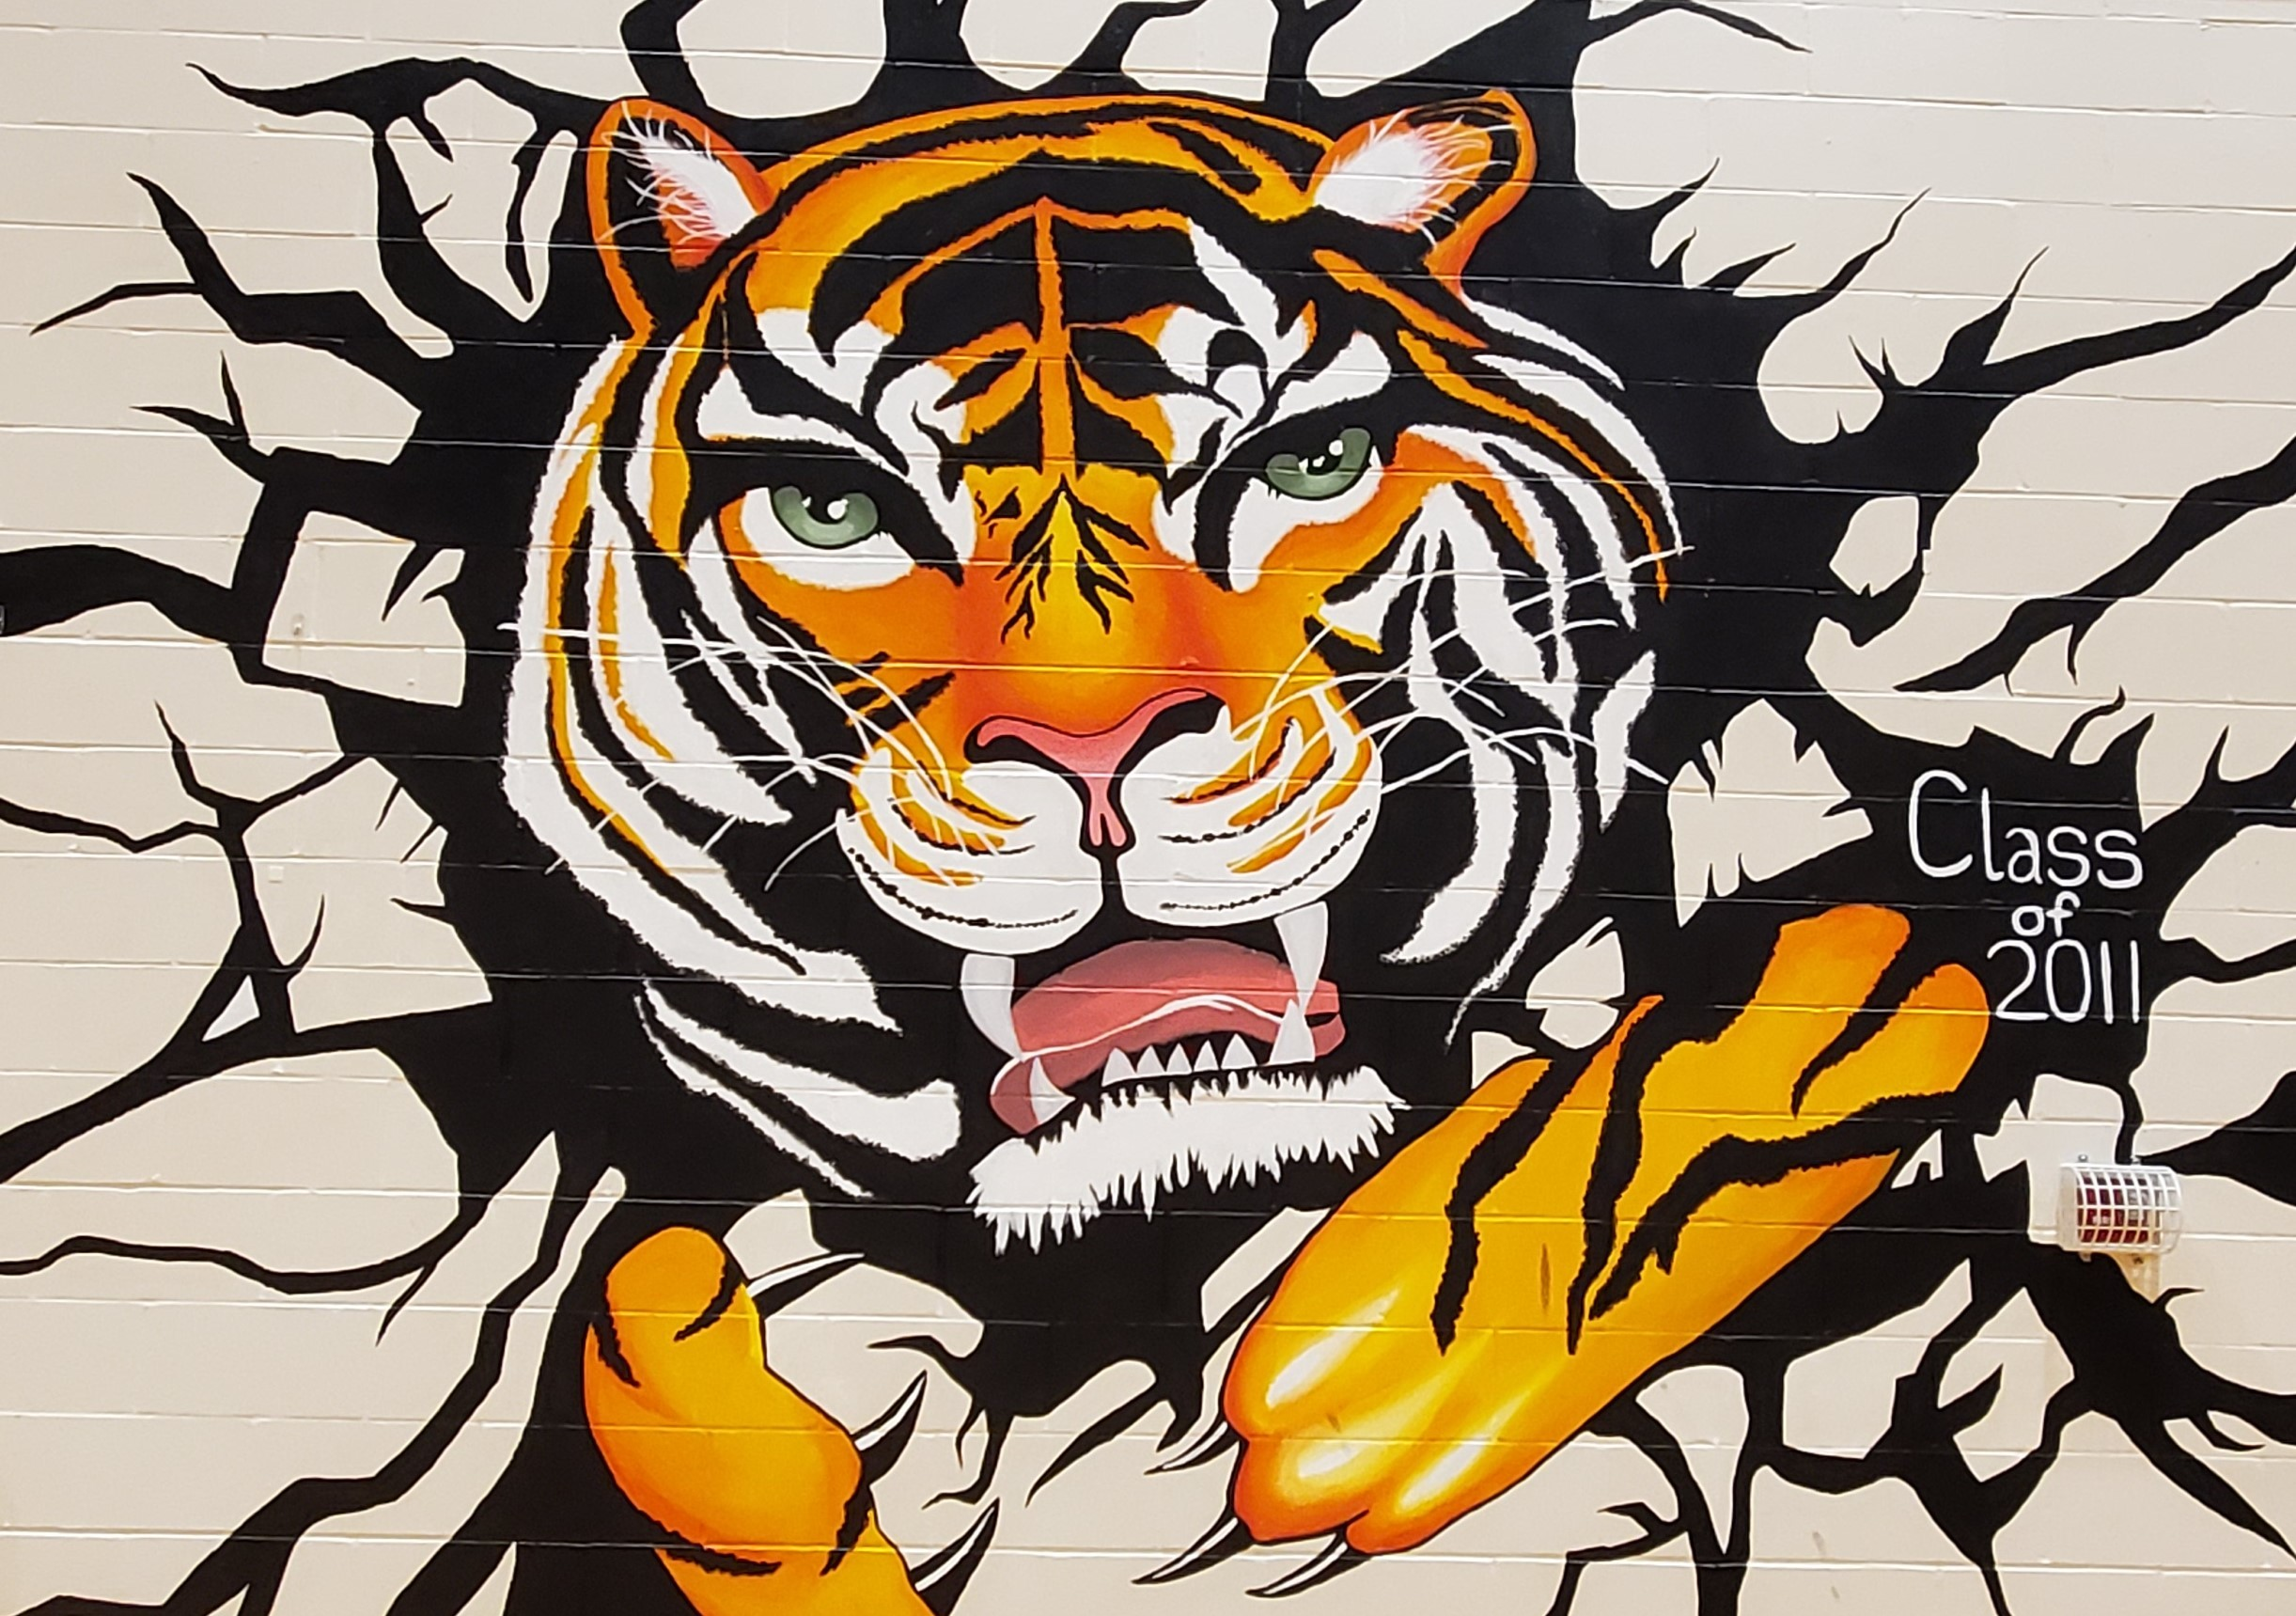 Tiger breaking through gym wall